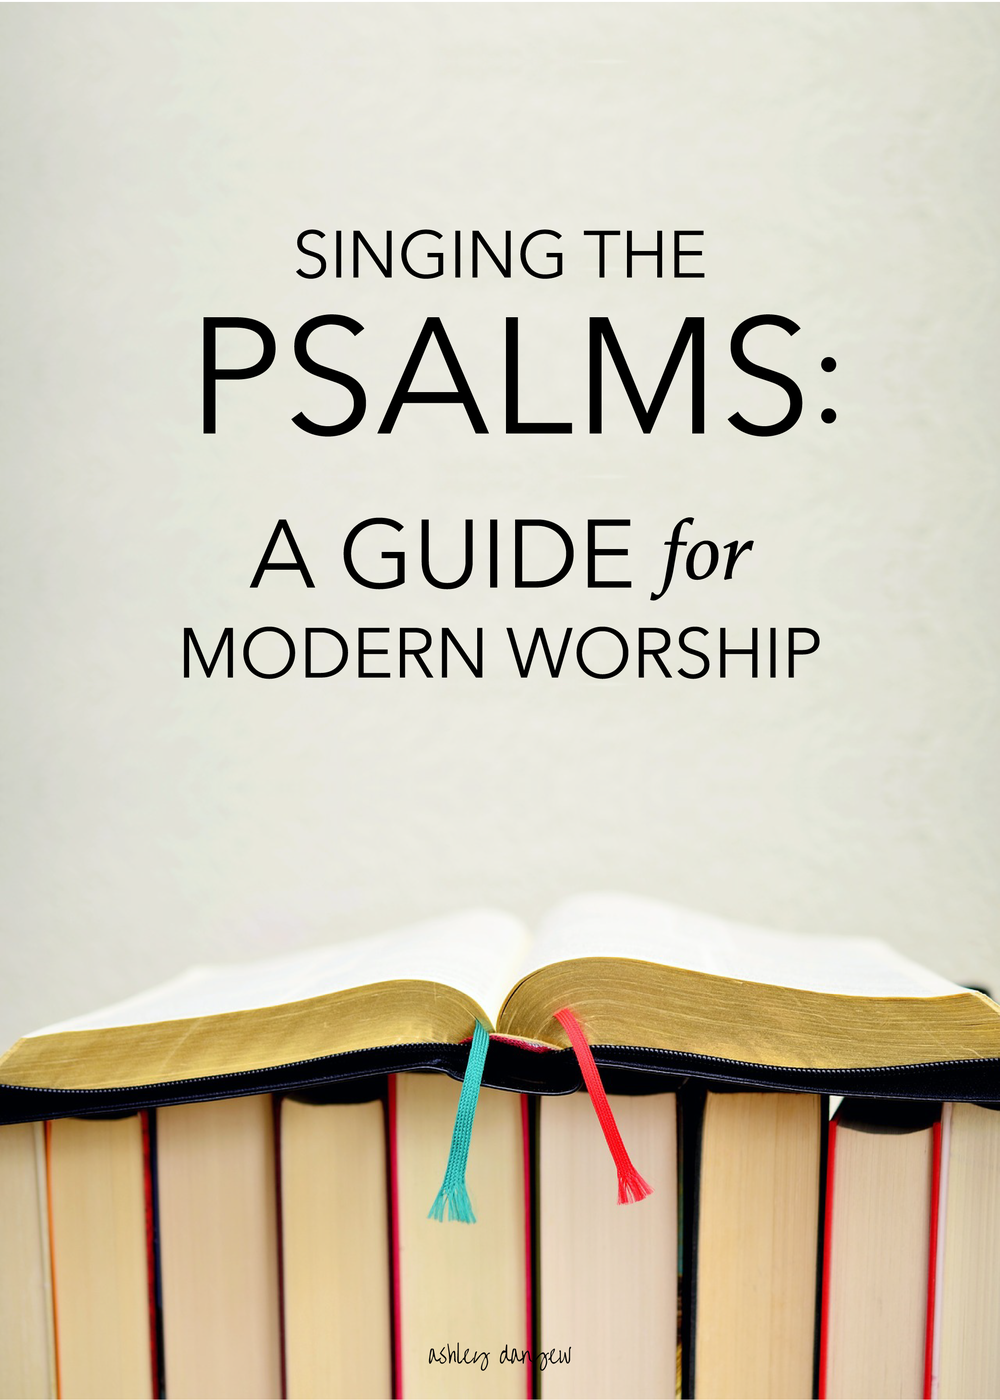 Copy of Singing the Psalms: A Guide for Modern Worship